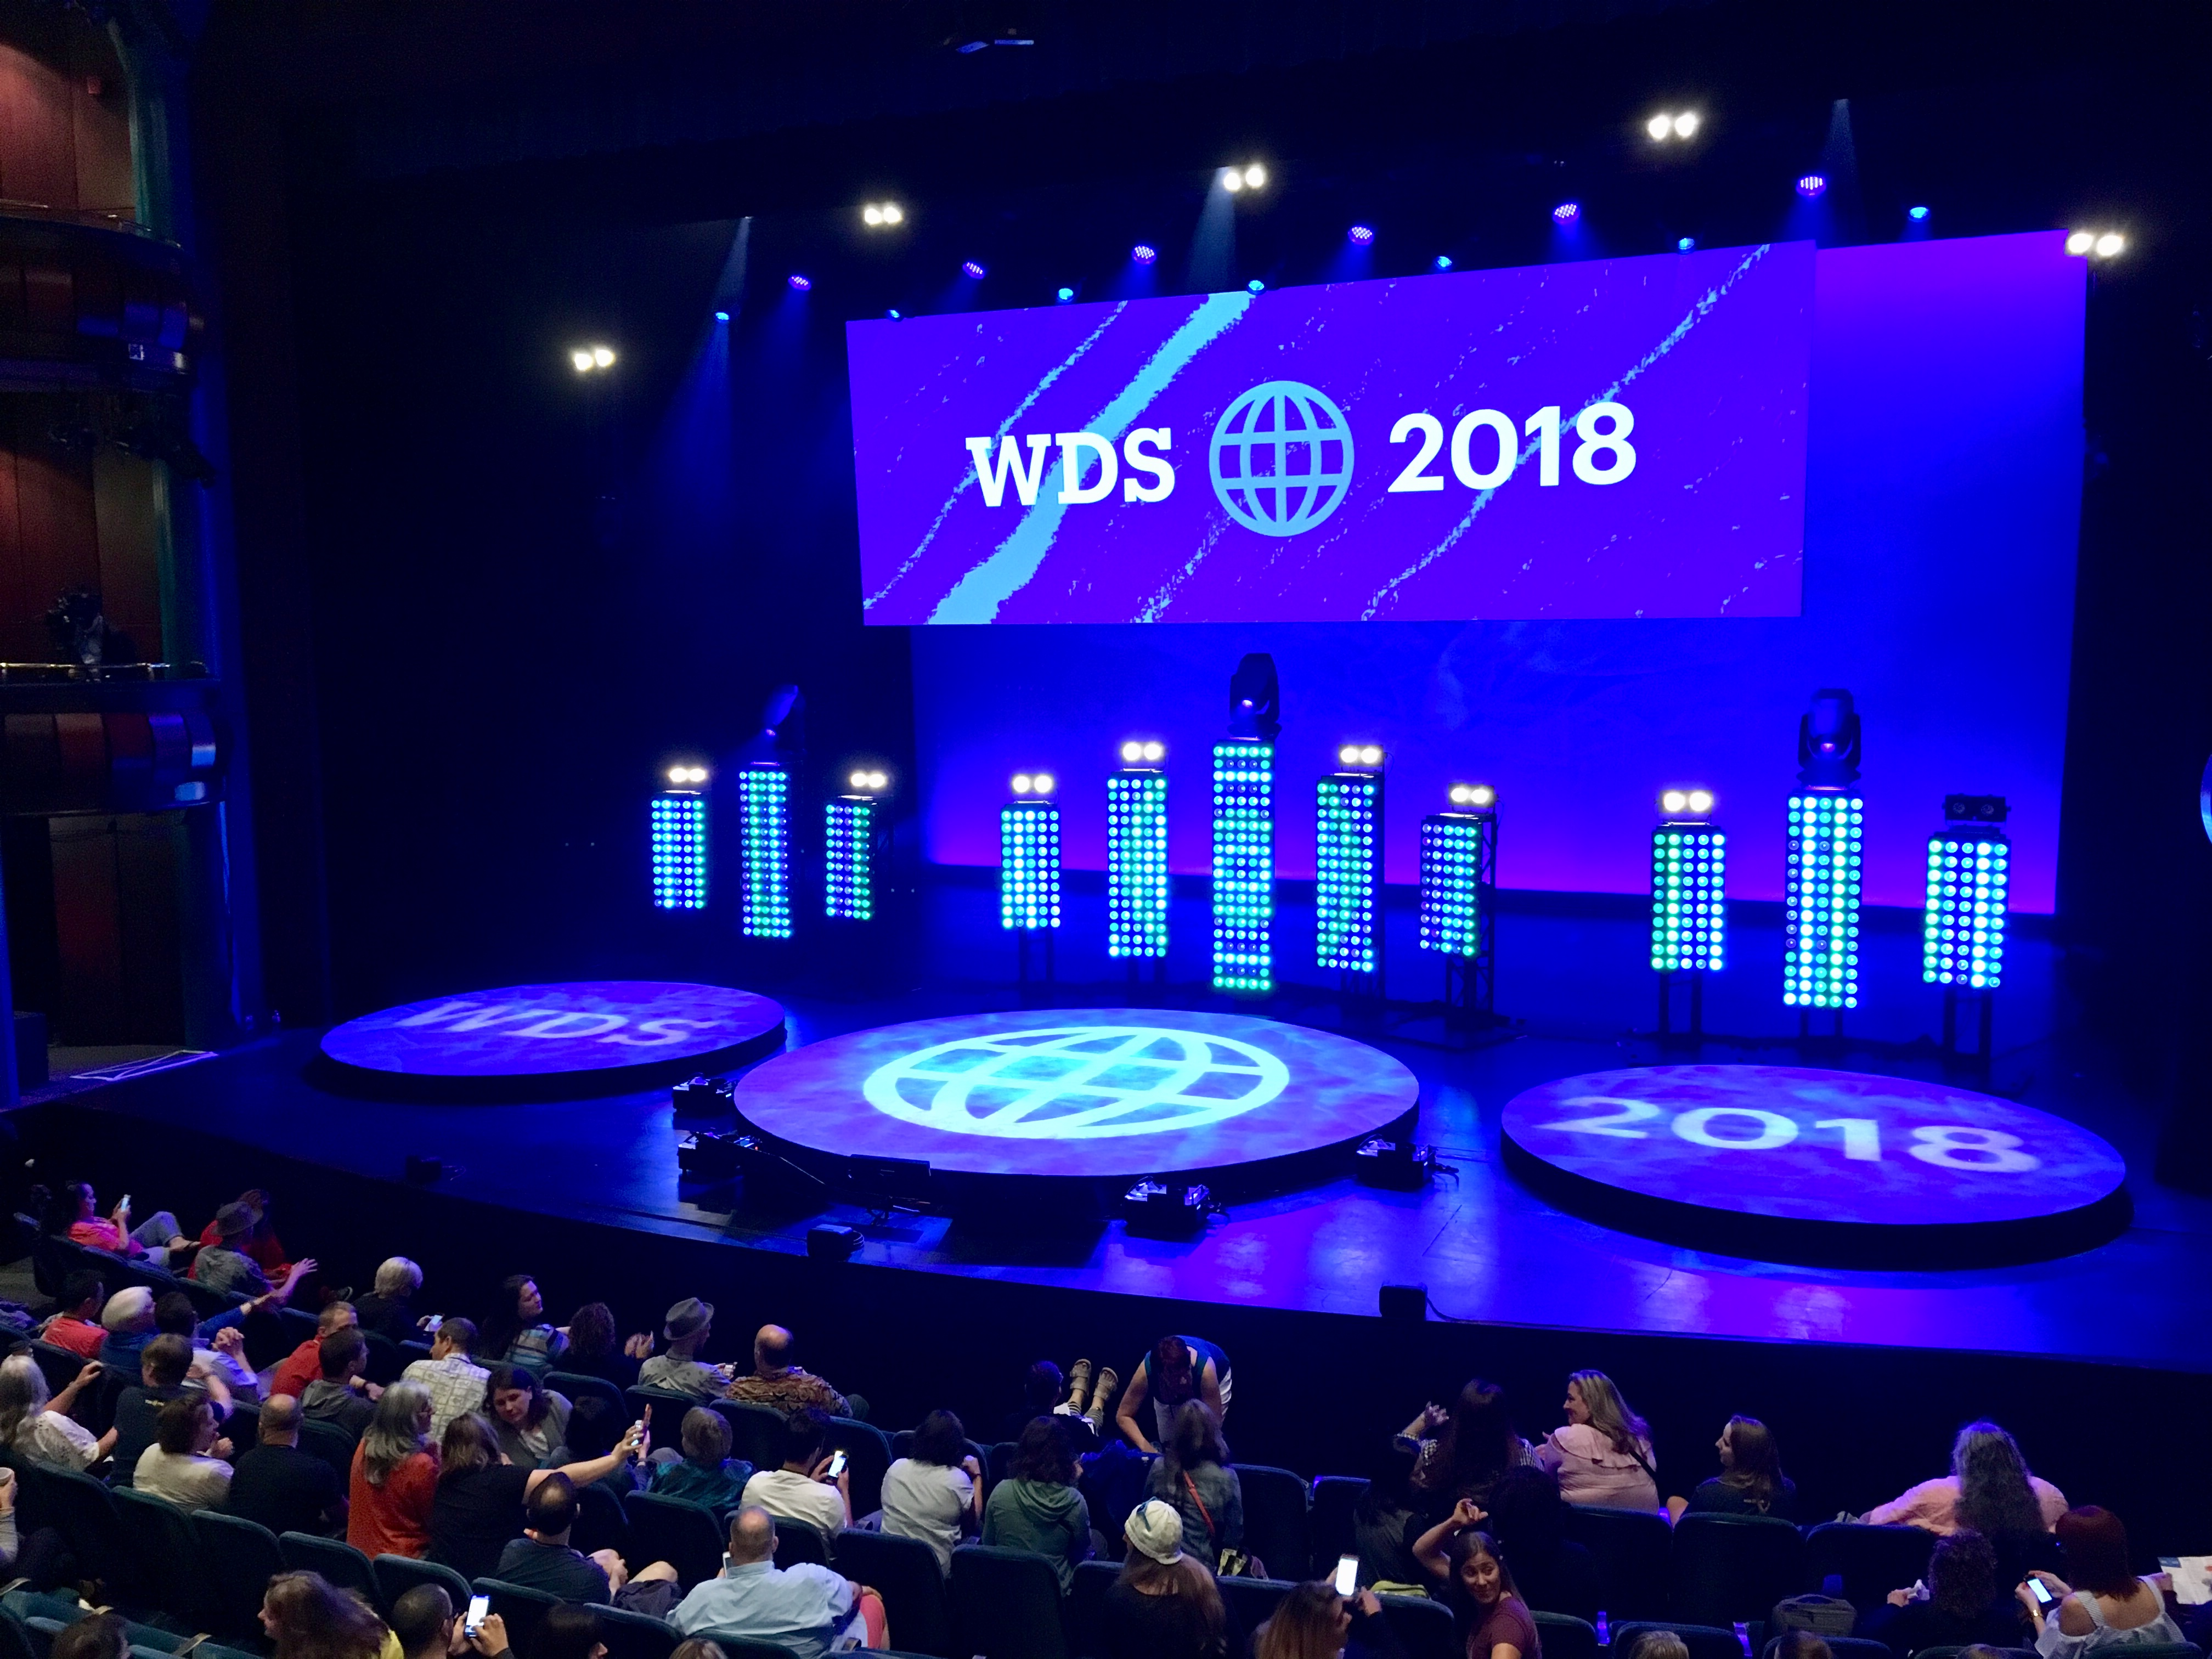 Looking back on WDS 2018